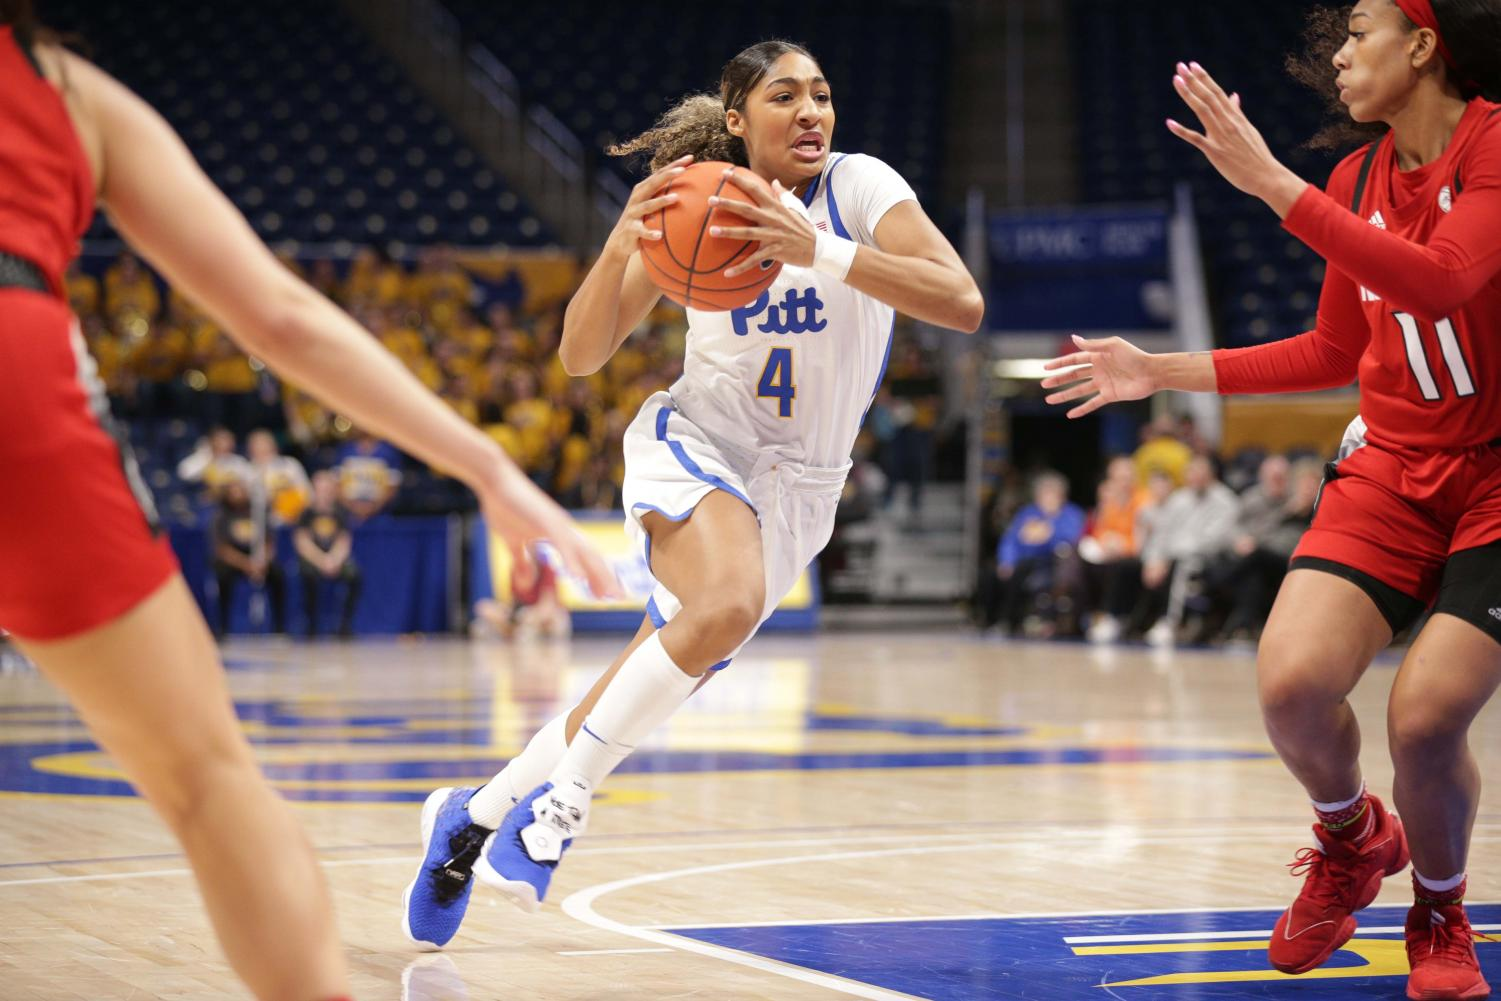 With the loss to No. 5 Louisville, the Panthers (3-16 overall, 0-8 ACC) extend their losing streak to 12 games on the season and remain winless in conference play in womens' basketball.